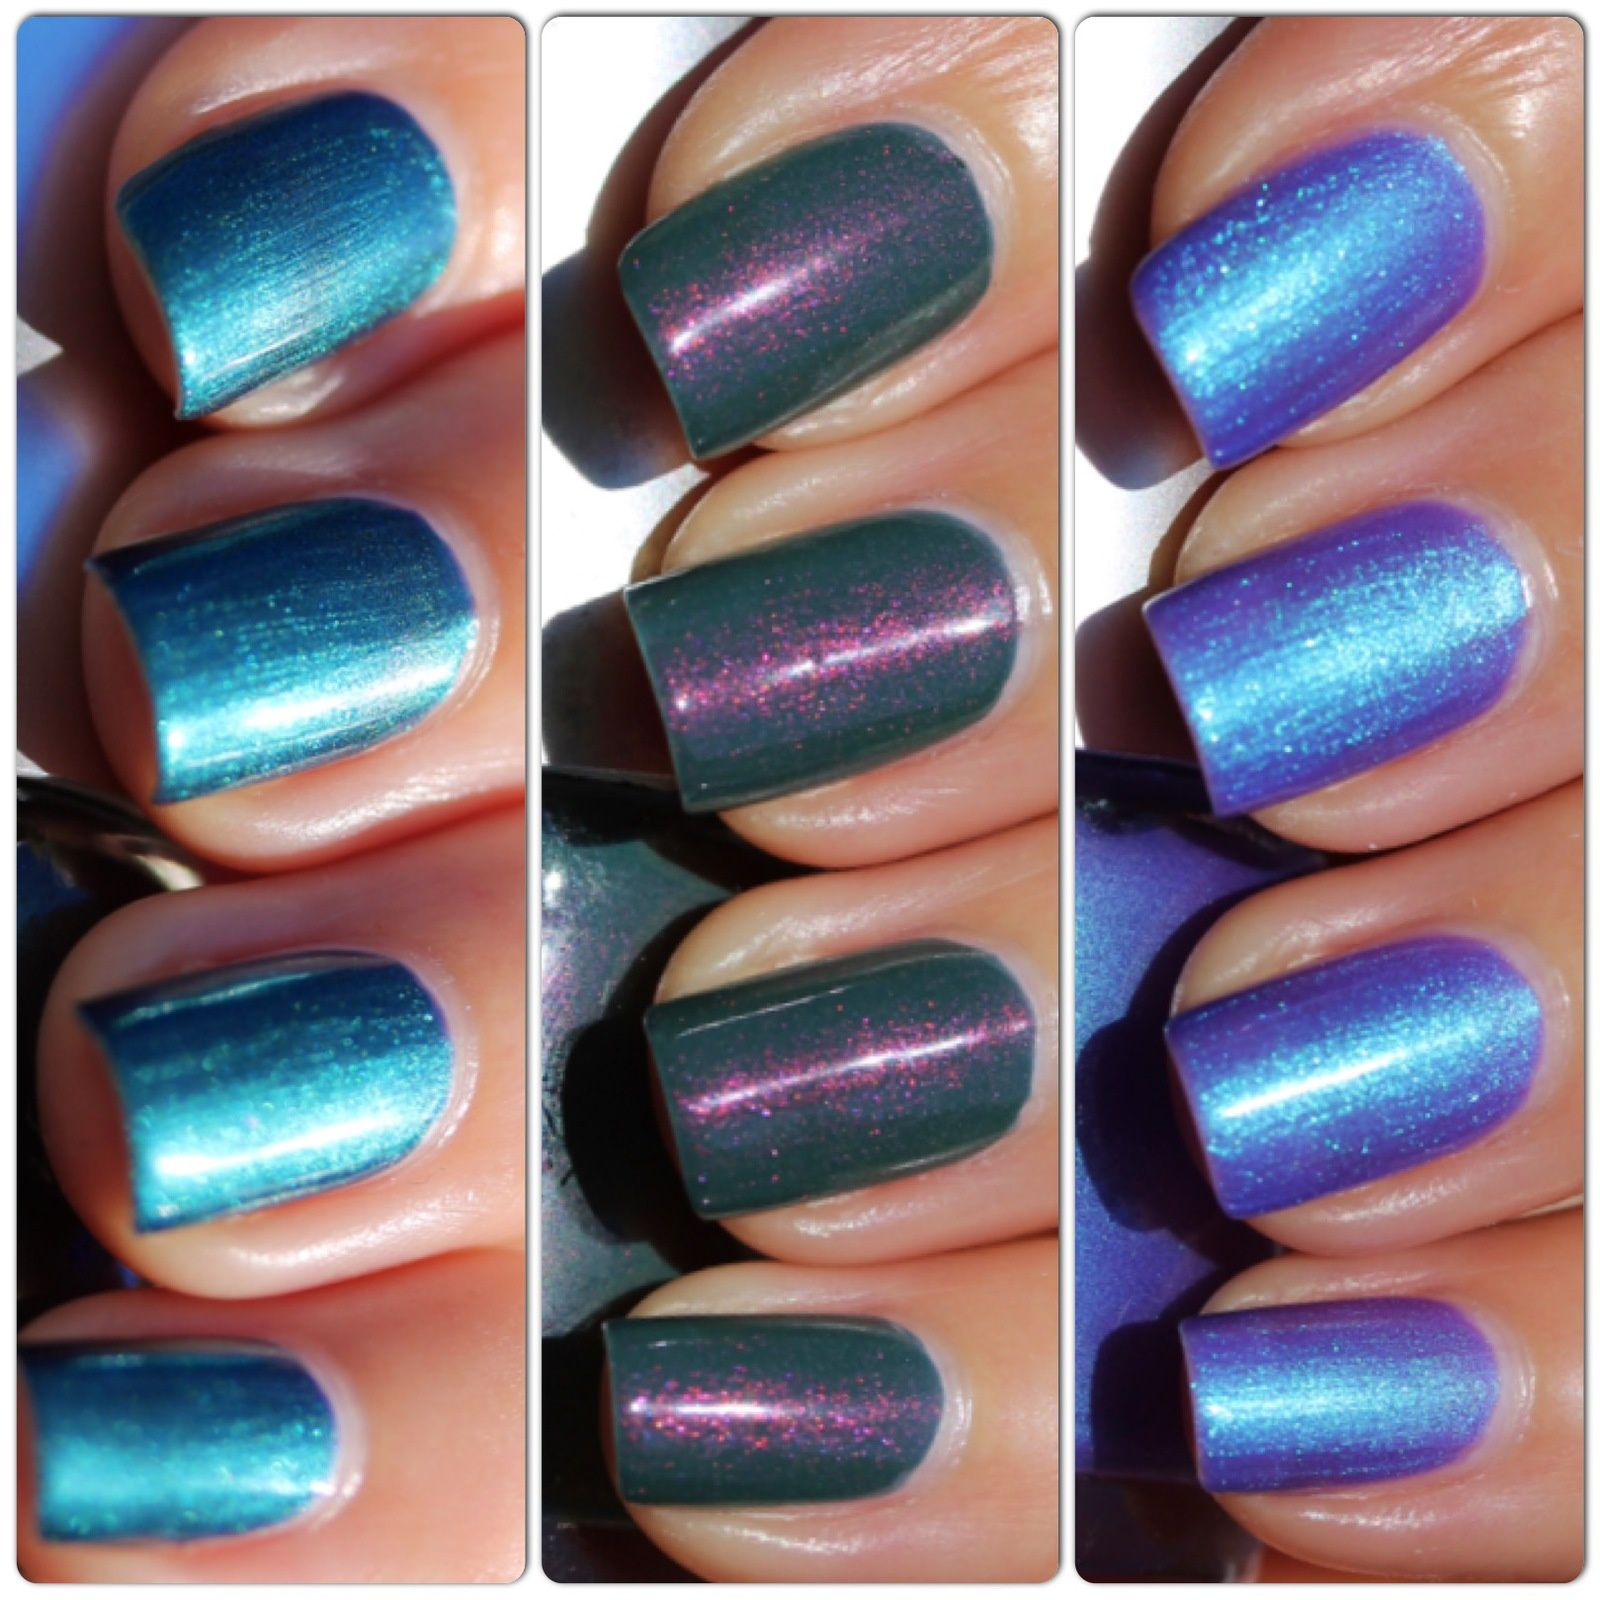 New Pink Dipsy Bulle Franken Polish Limites Edition - The Arthurian Legend